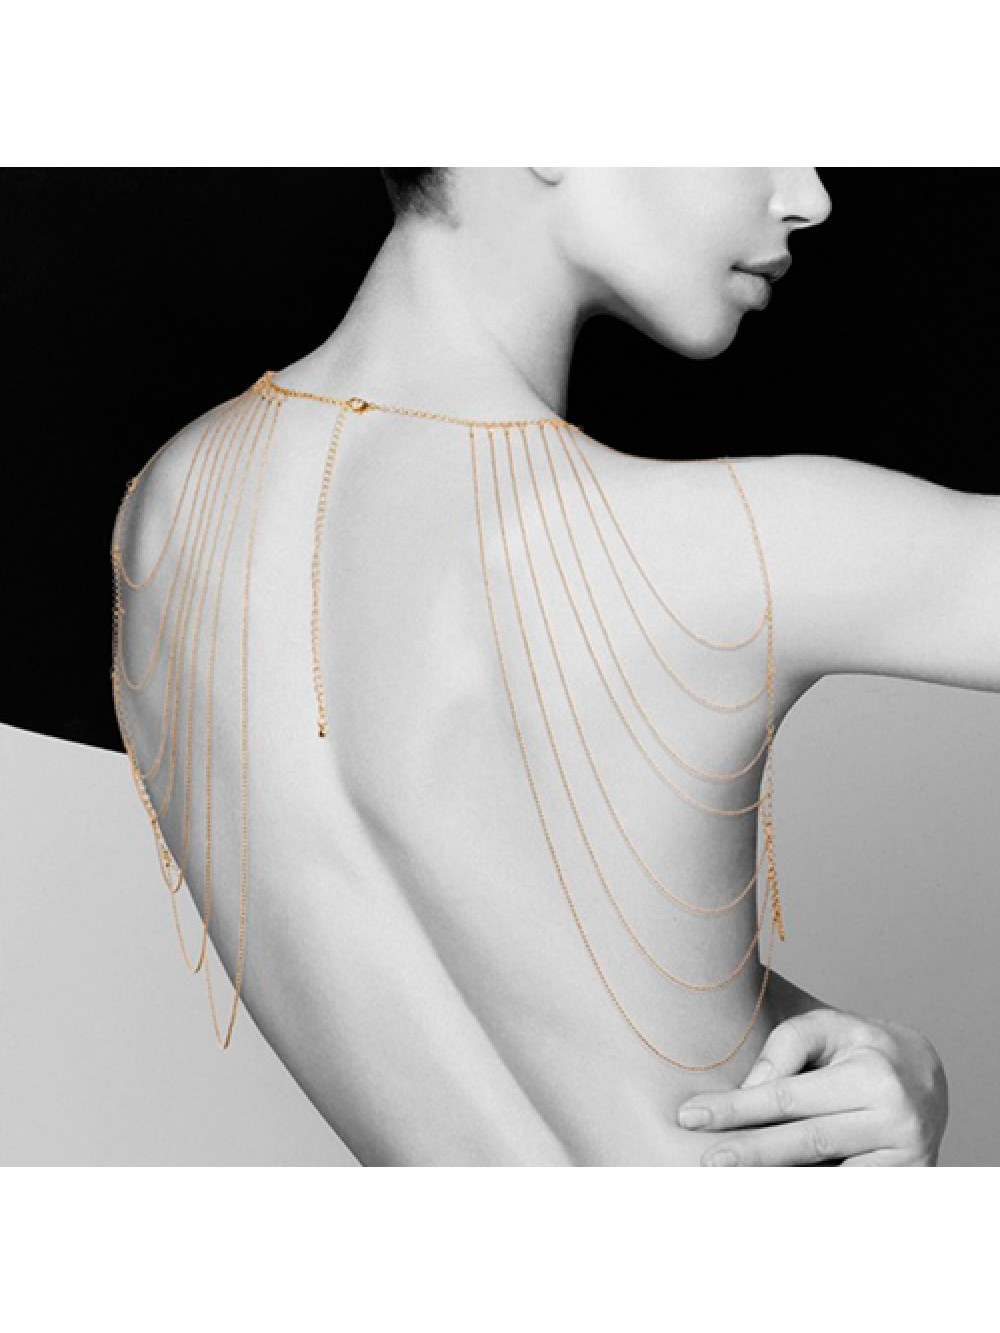 THE MAGNIFIQUE COLLECTION SHOULDER AND BACK METALLIC COLLAR BIJOUX INDISCRETS GOLD 8437008003757